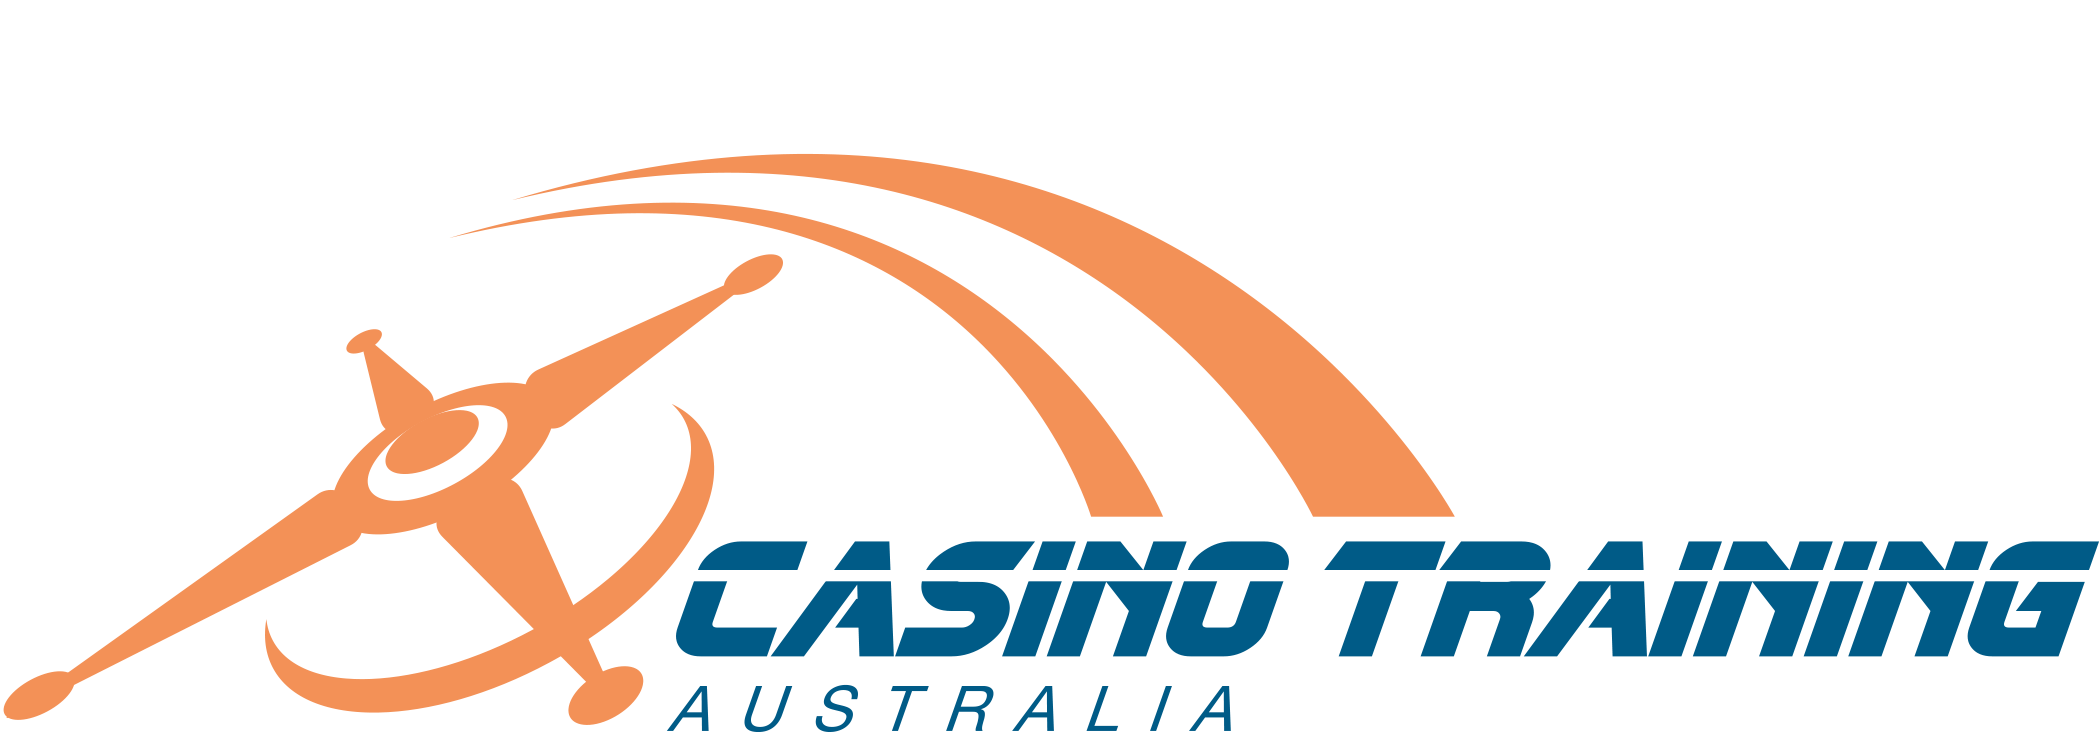 Casino Training Australia Logo